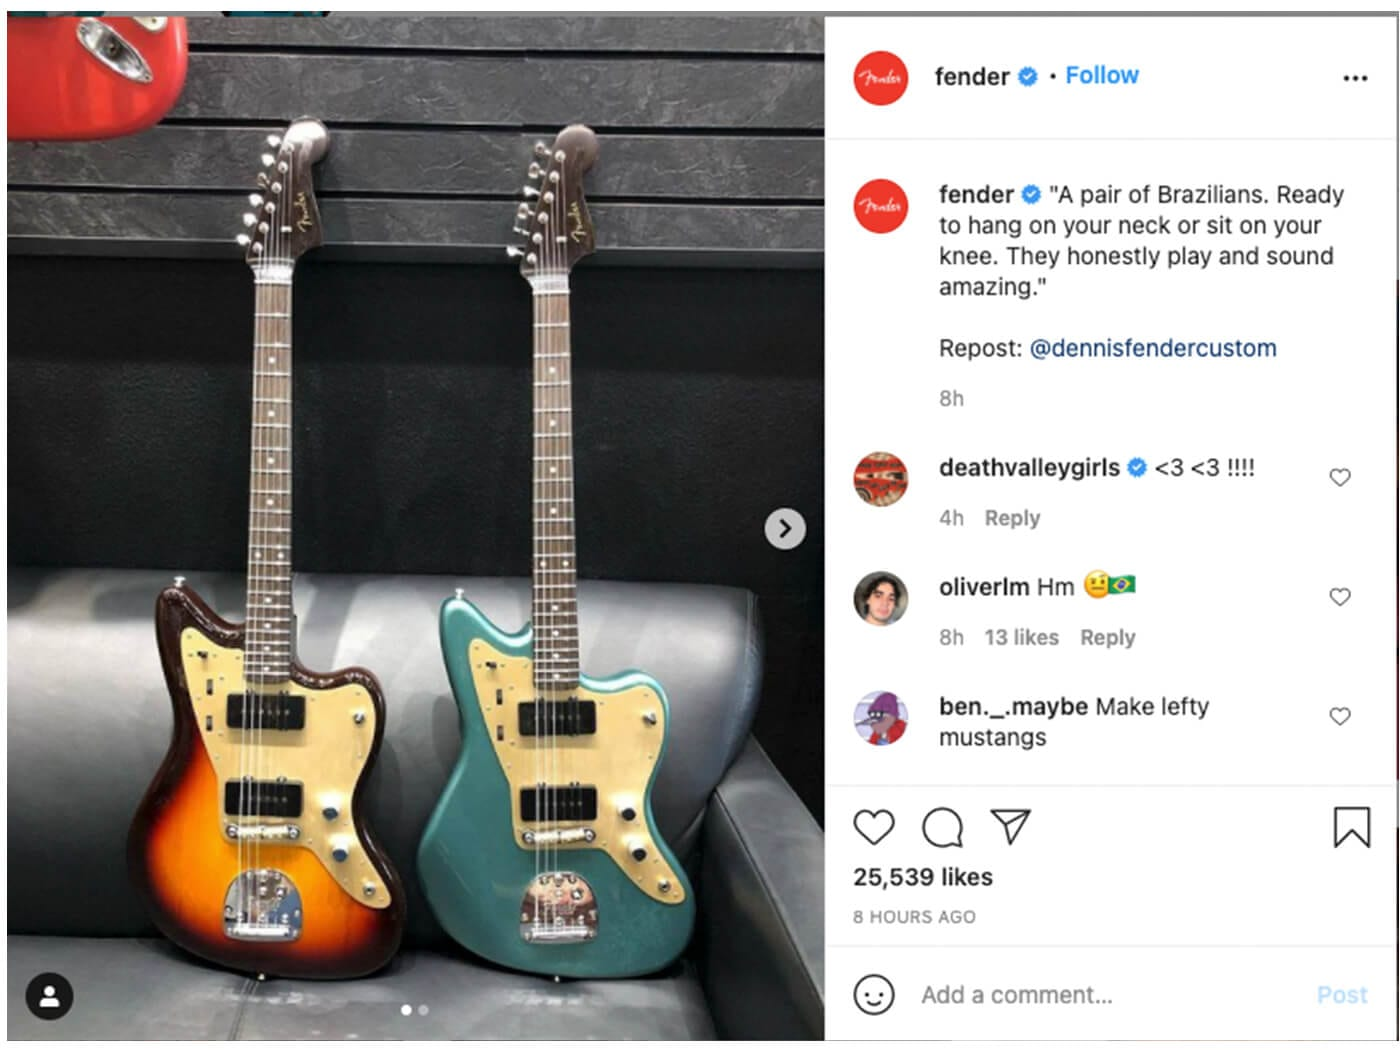 The now-removed FenderInstagram post